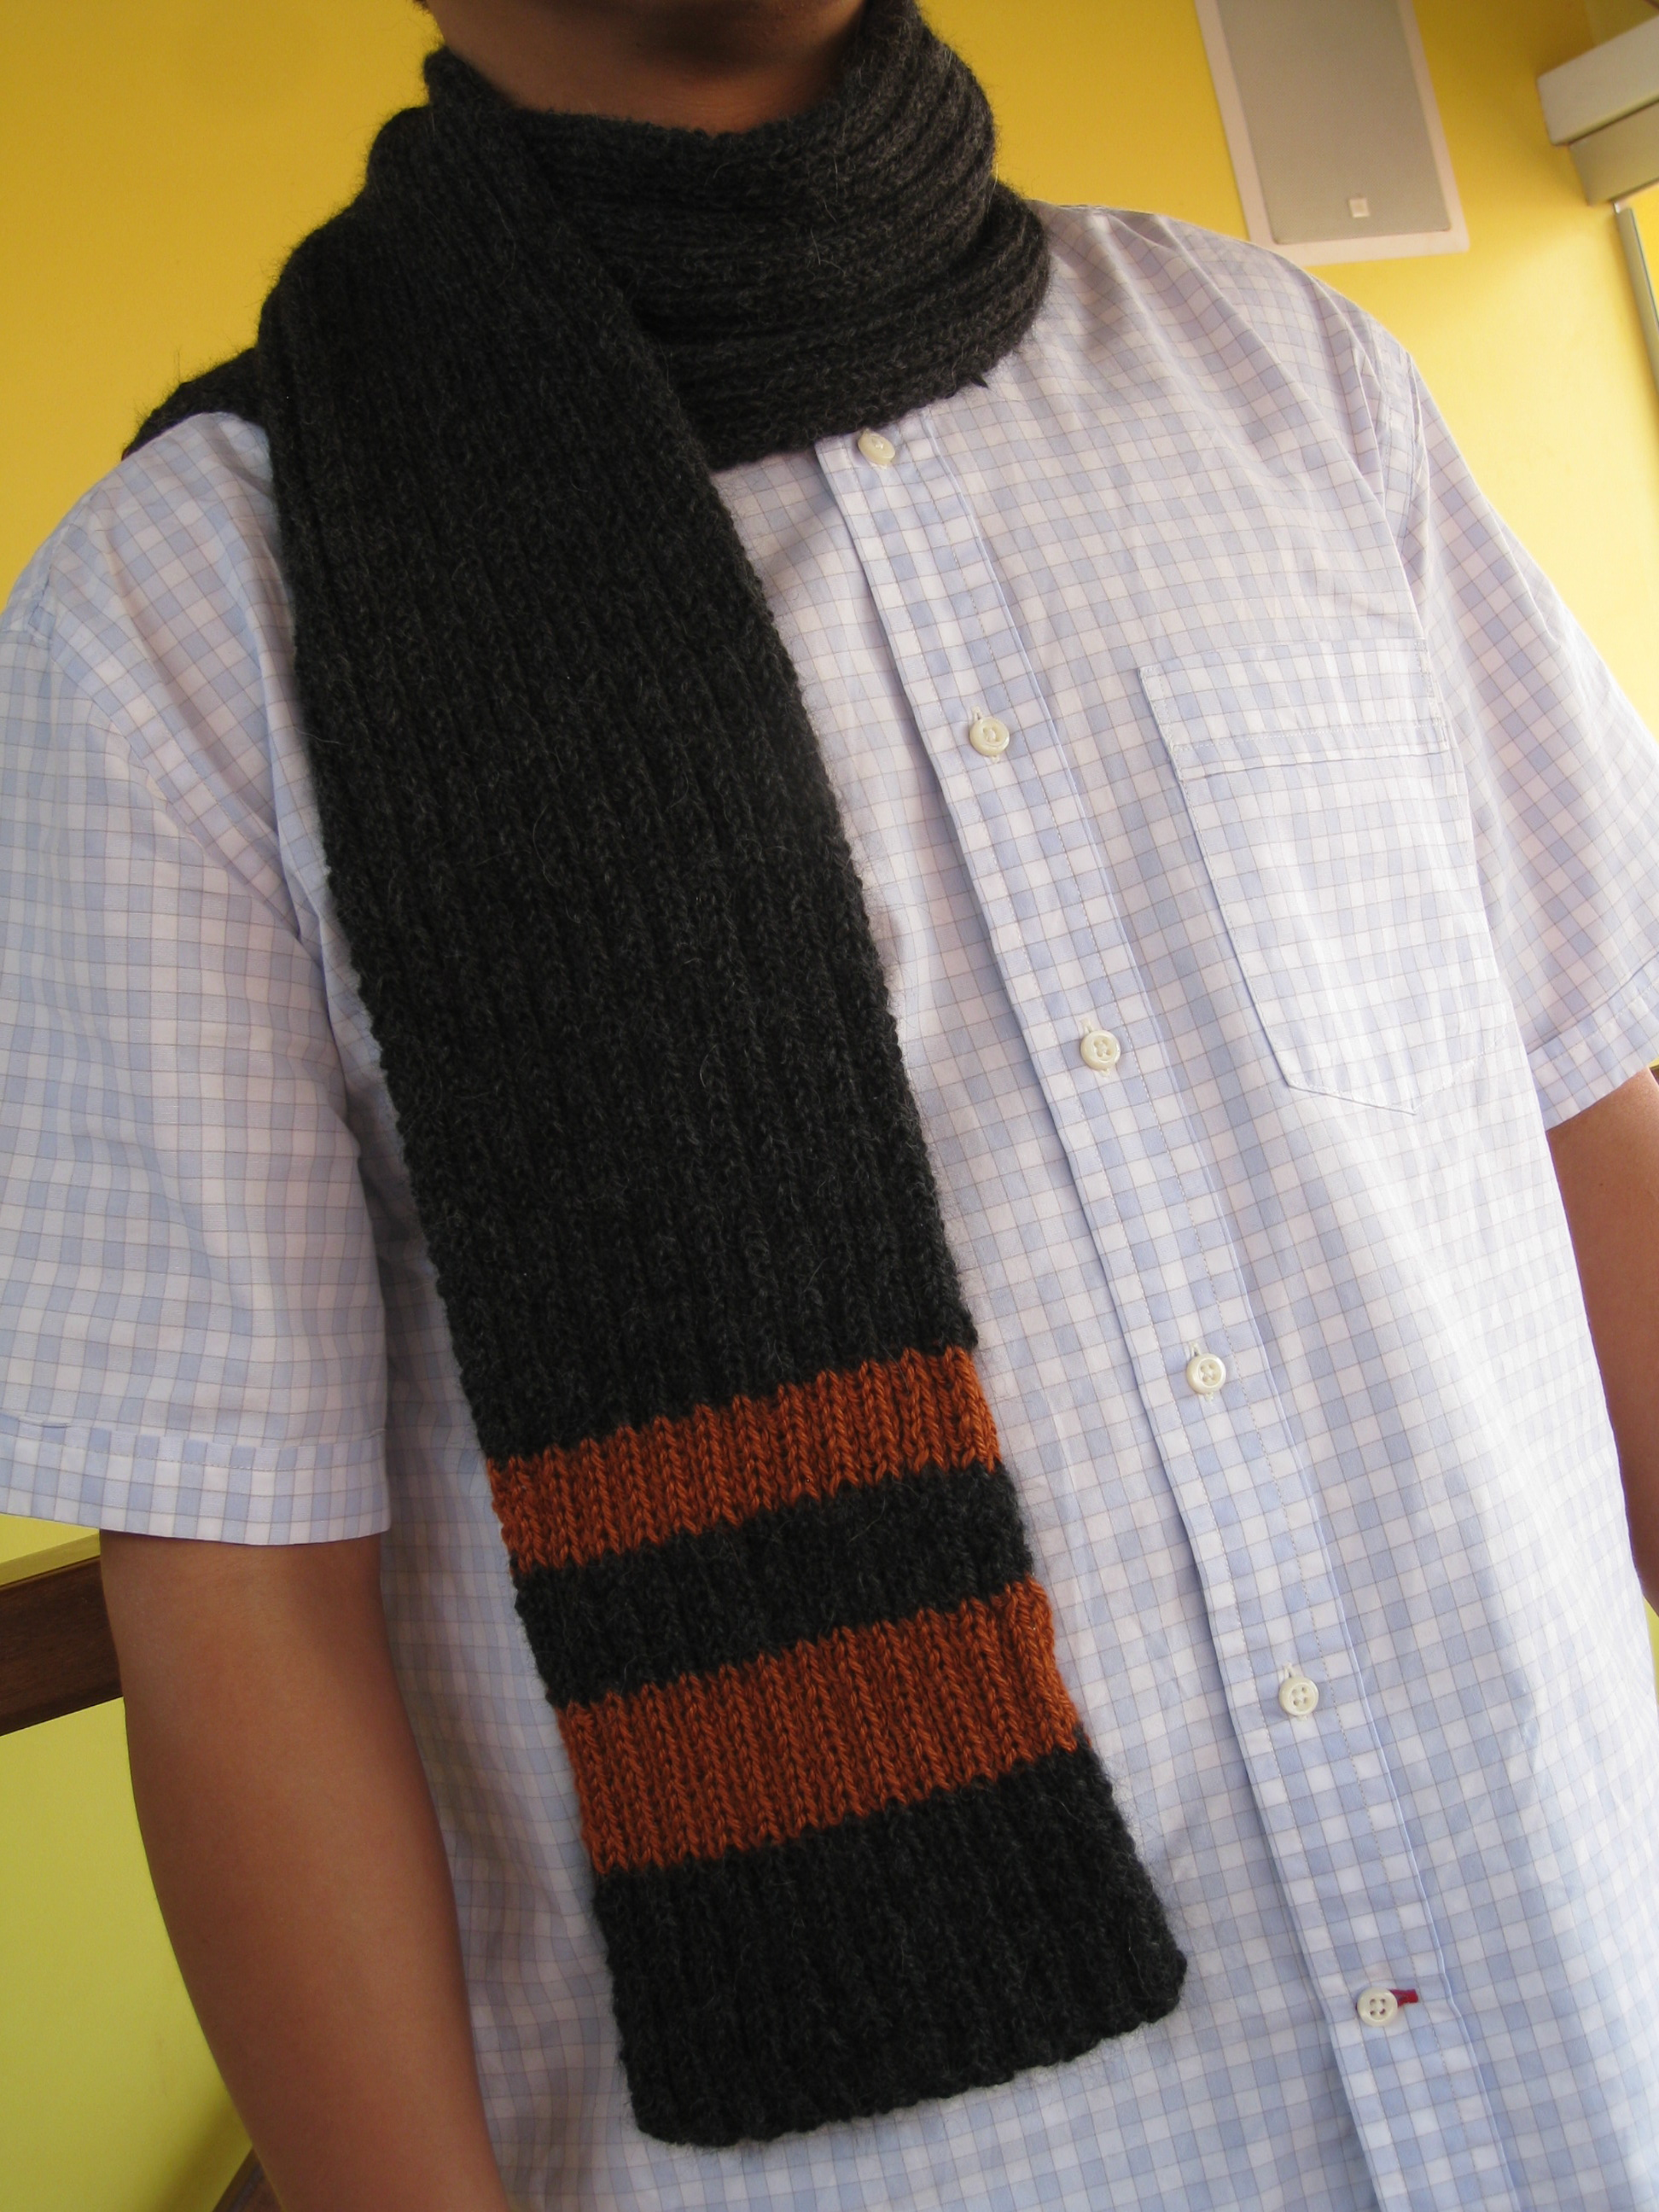 Grey-Oranged Scarf Done